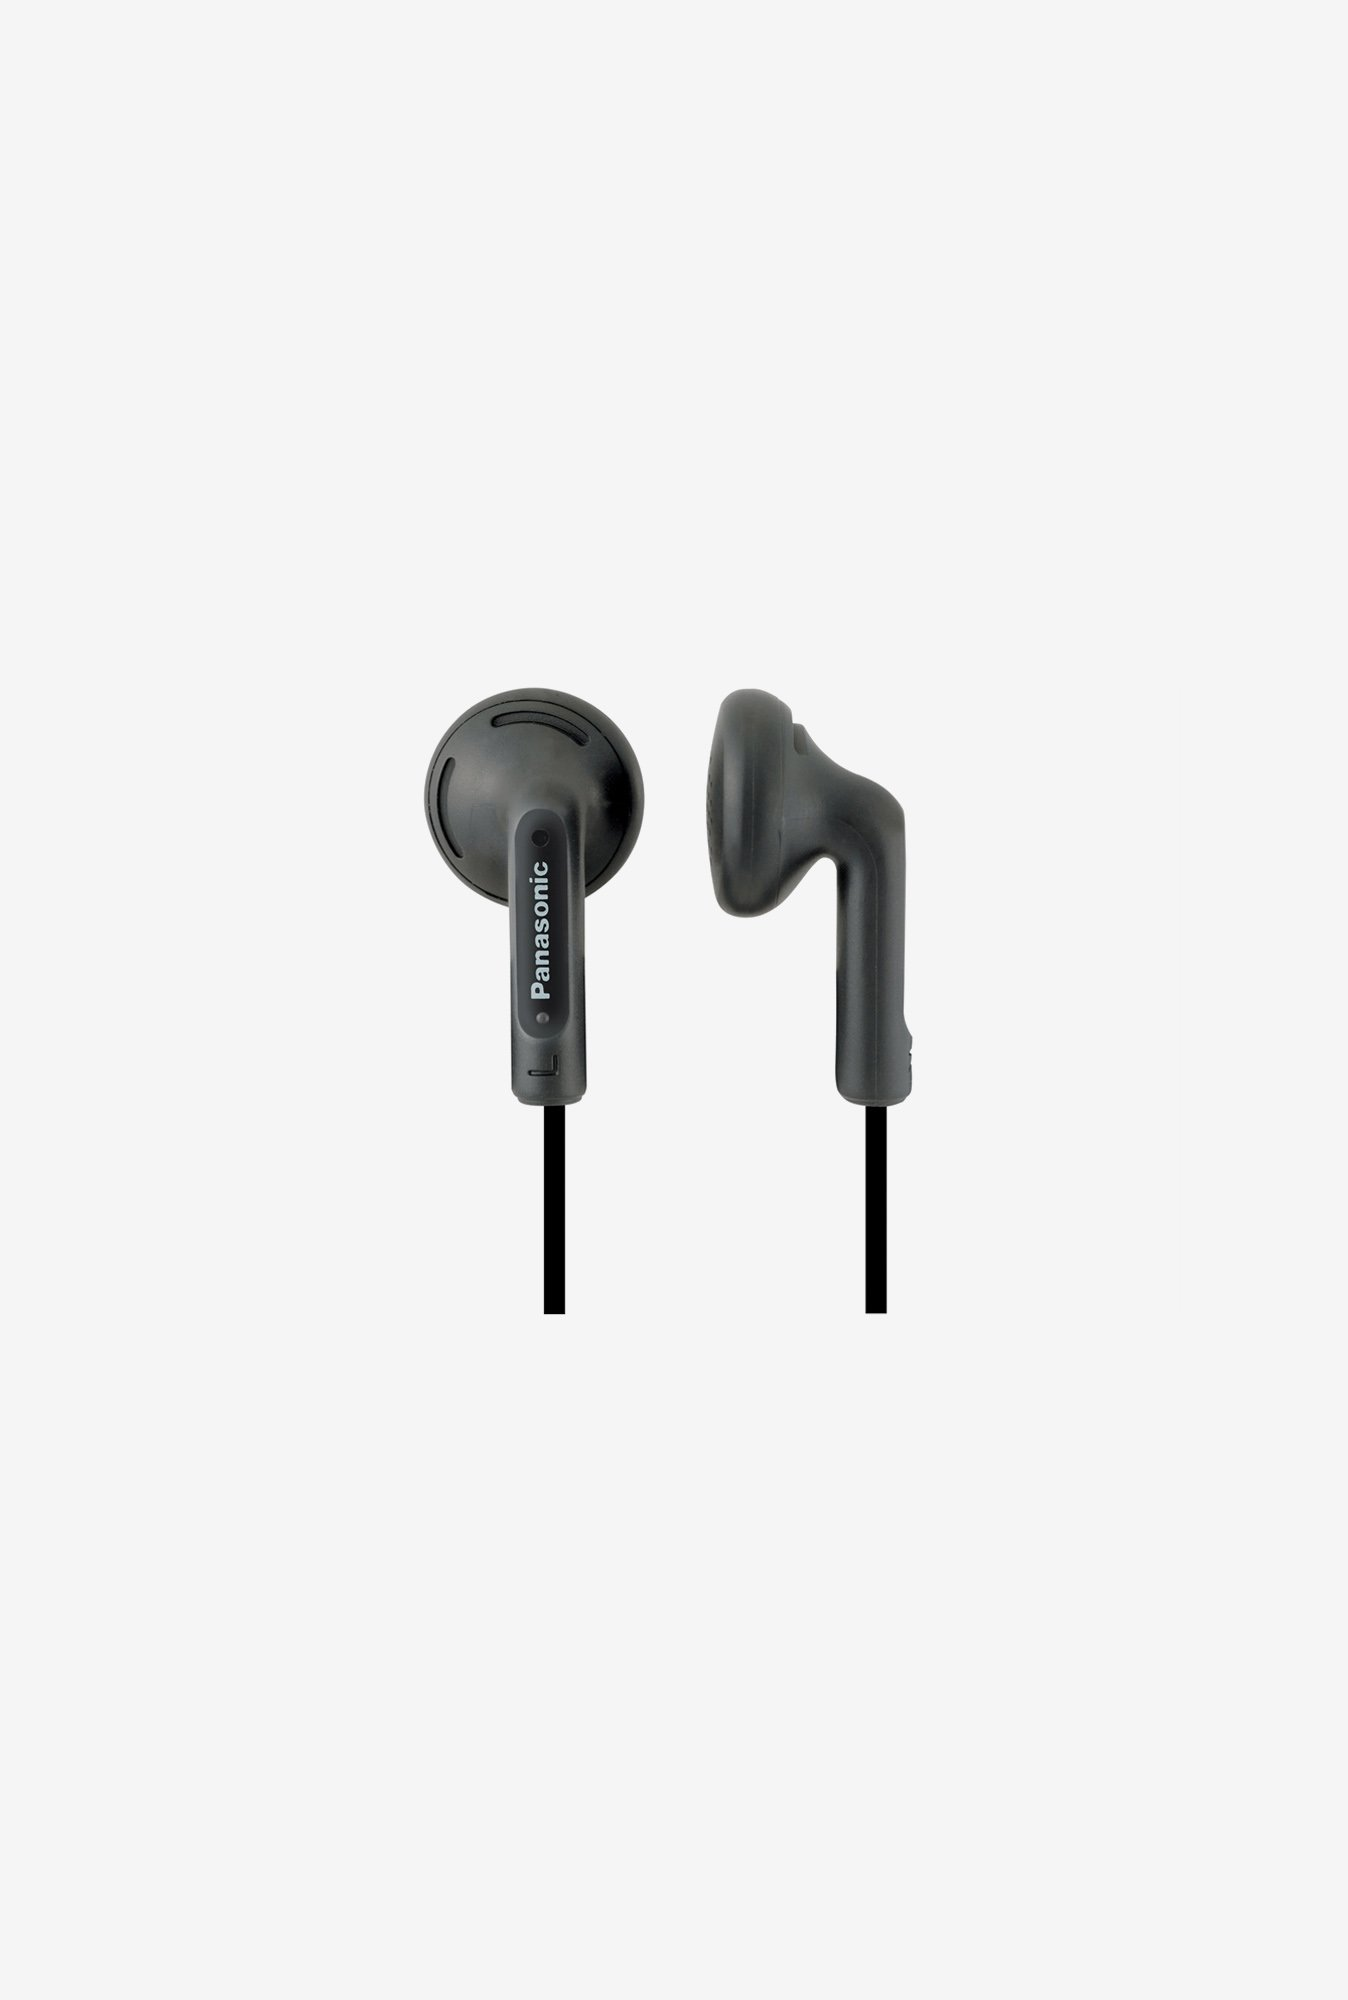 Panasonic RP-HV094 In the Ear Headphone Black